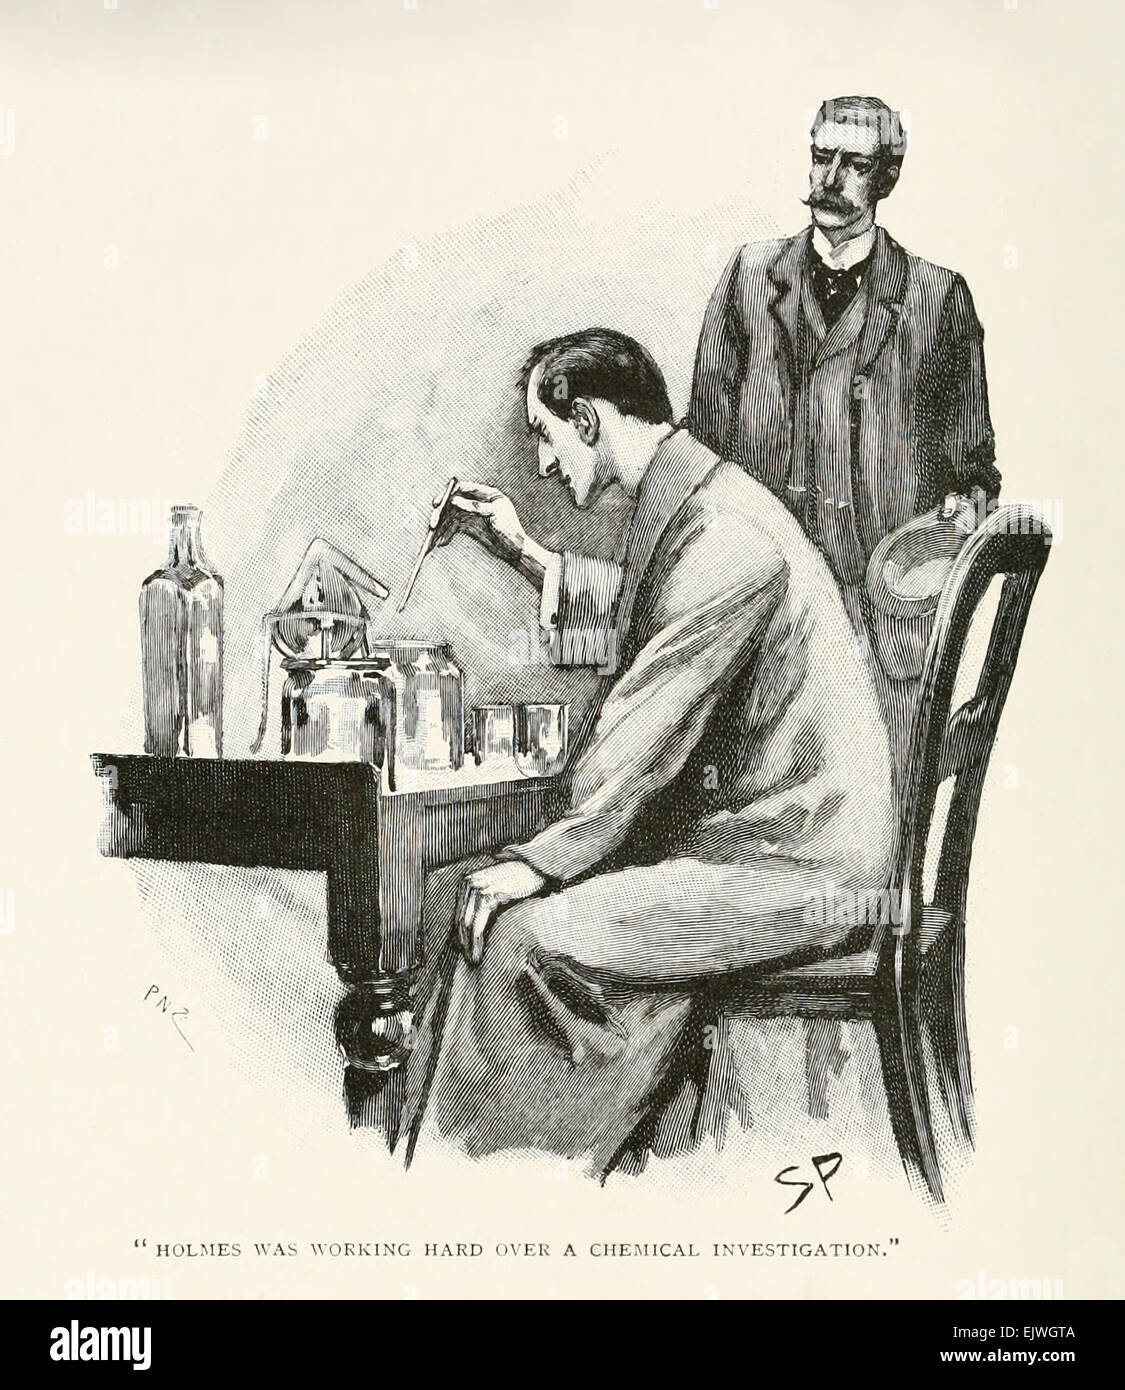 Holmes was Working Hard Over a Chemical Investigation - from 'The Naval Treaty' by Arthur Conan Doyle (1859 - Stock Image